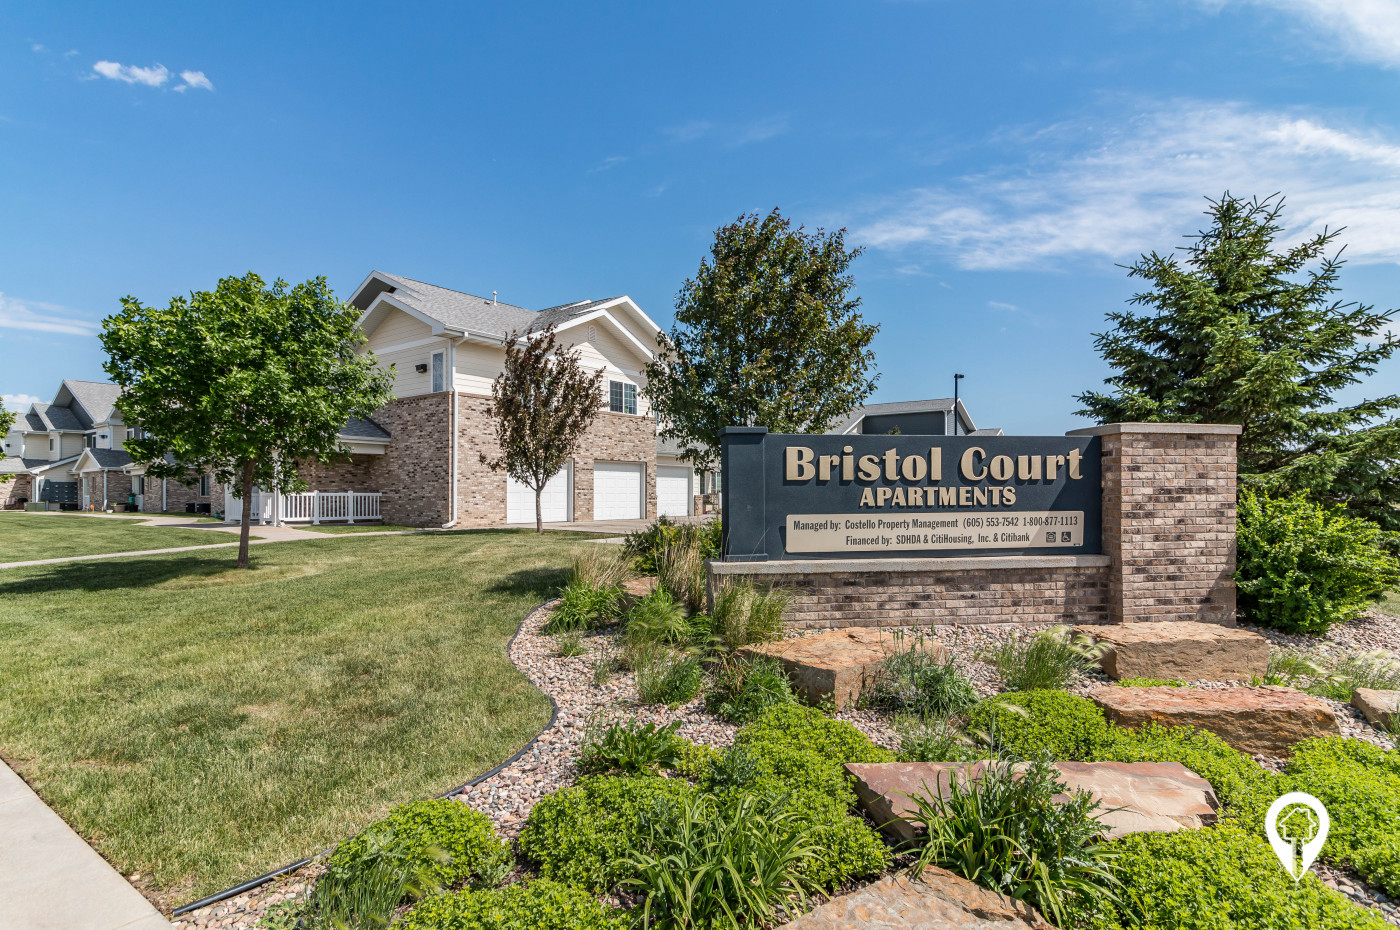 Bristol Court Apartments Video Tour